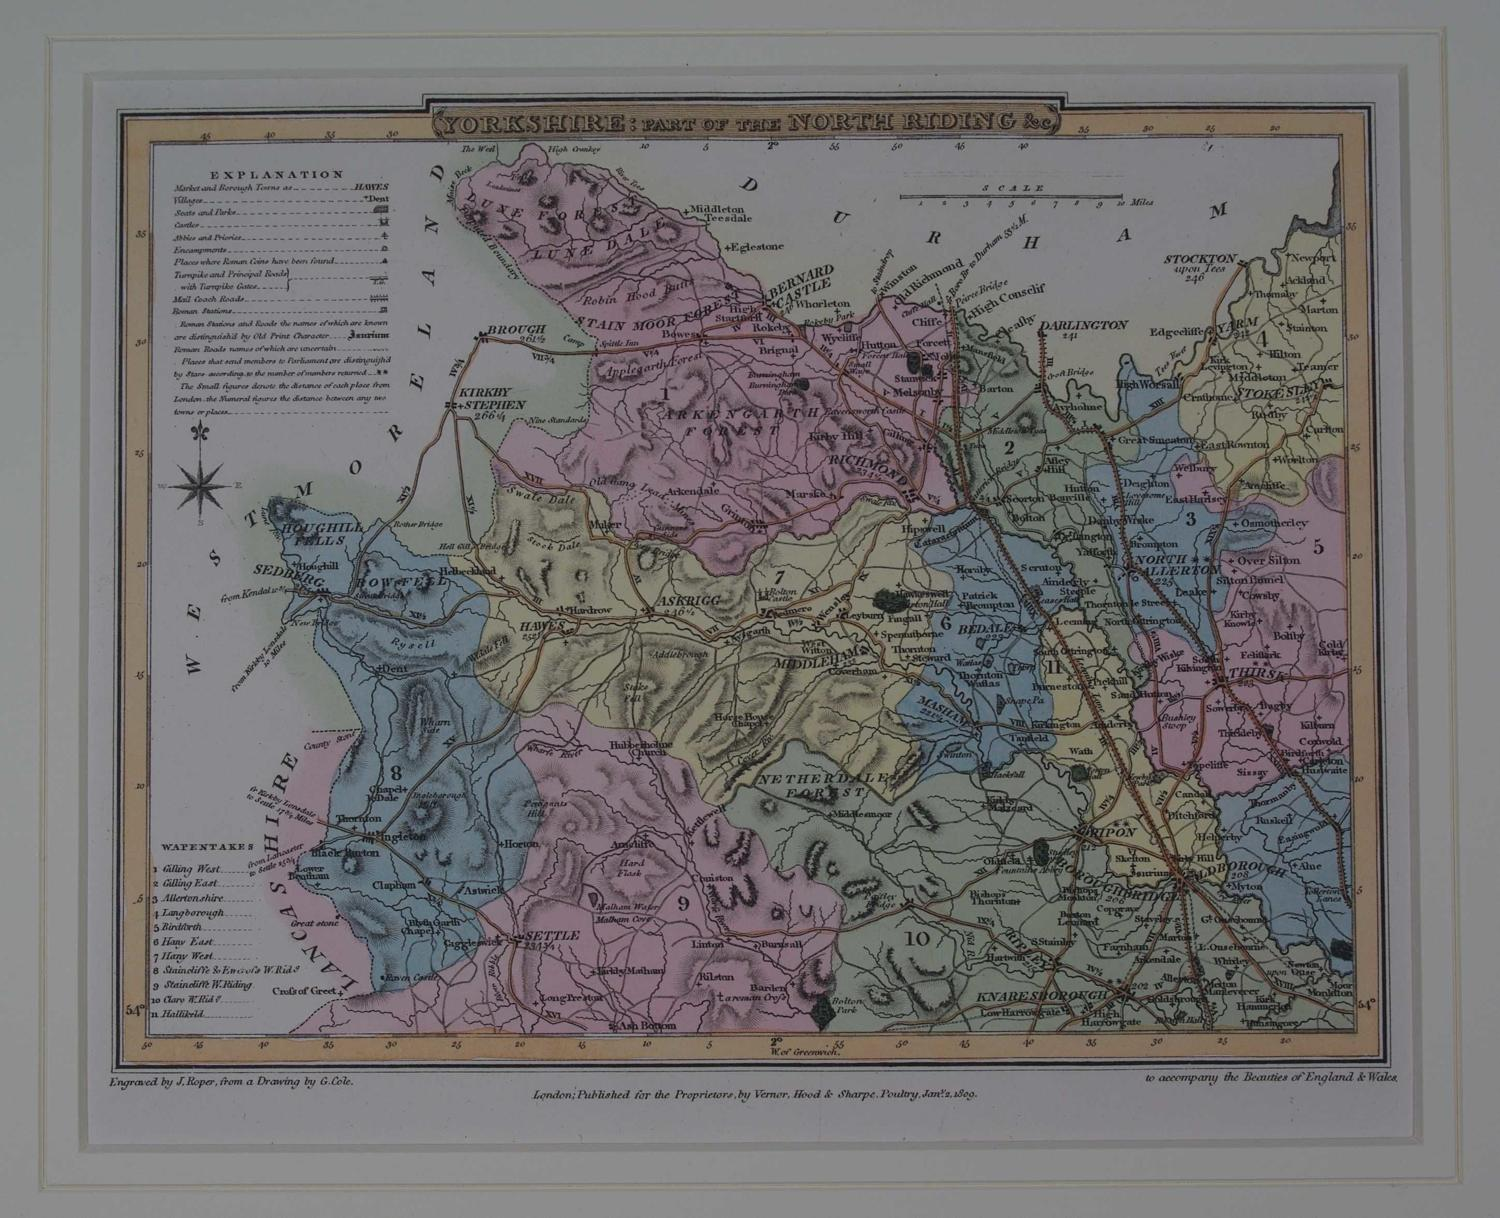 Yorkshire: part of the North Riding etc by G Cole / J Roper / Joseph Nightingale